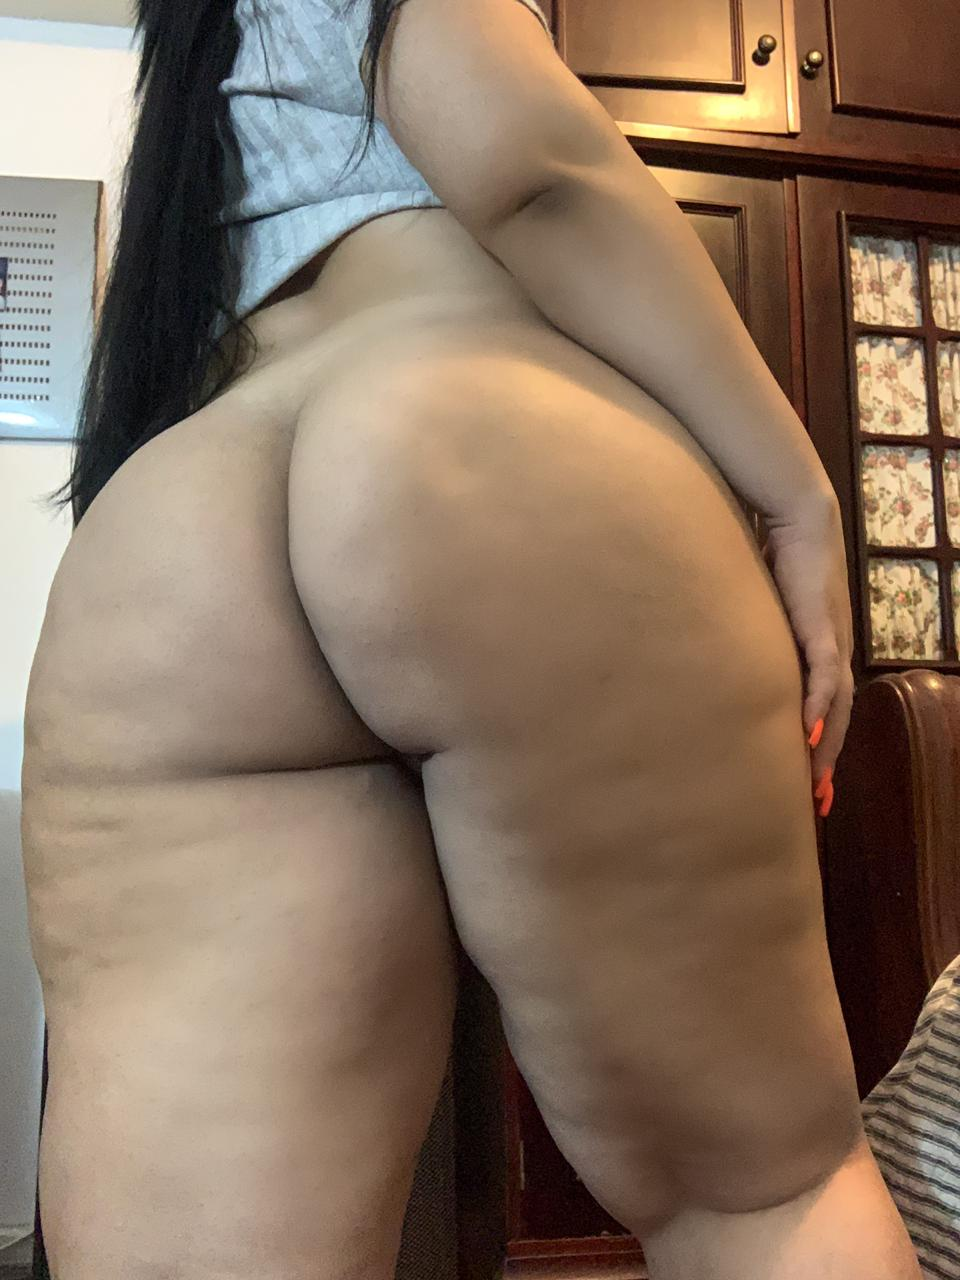 Victoria Matosa Nude Onlyfans Leaked! 0009